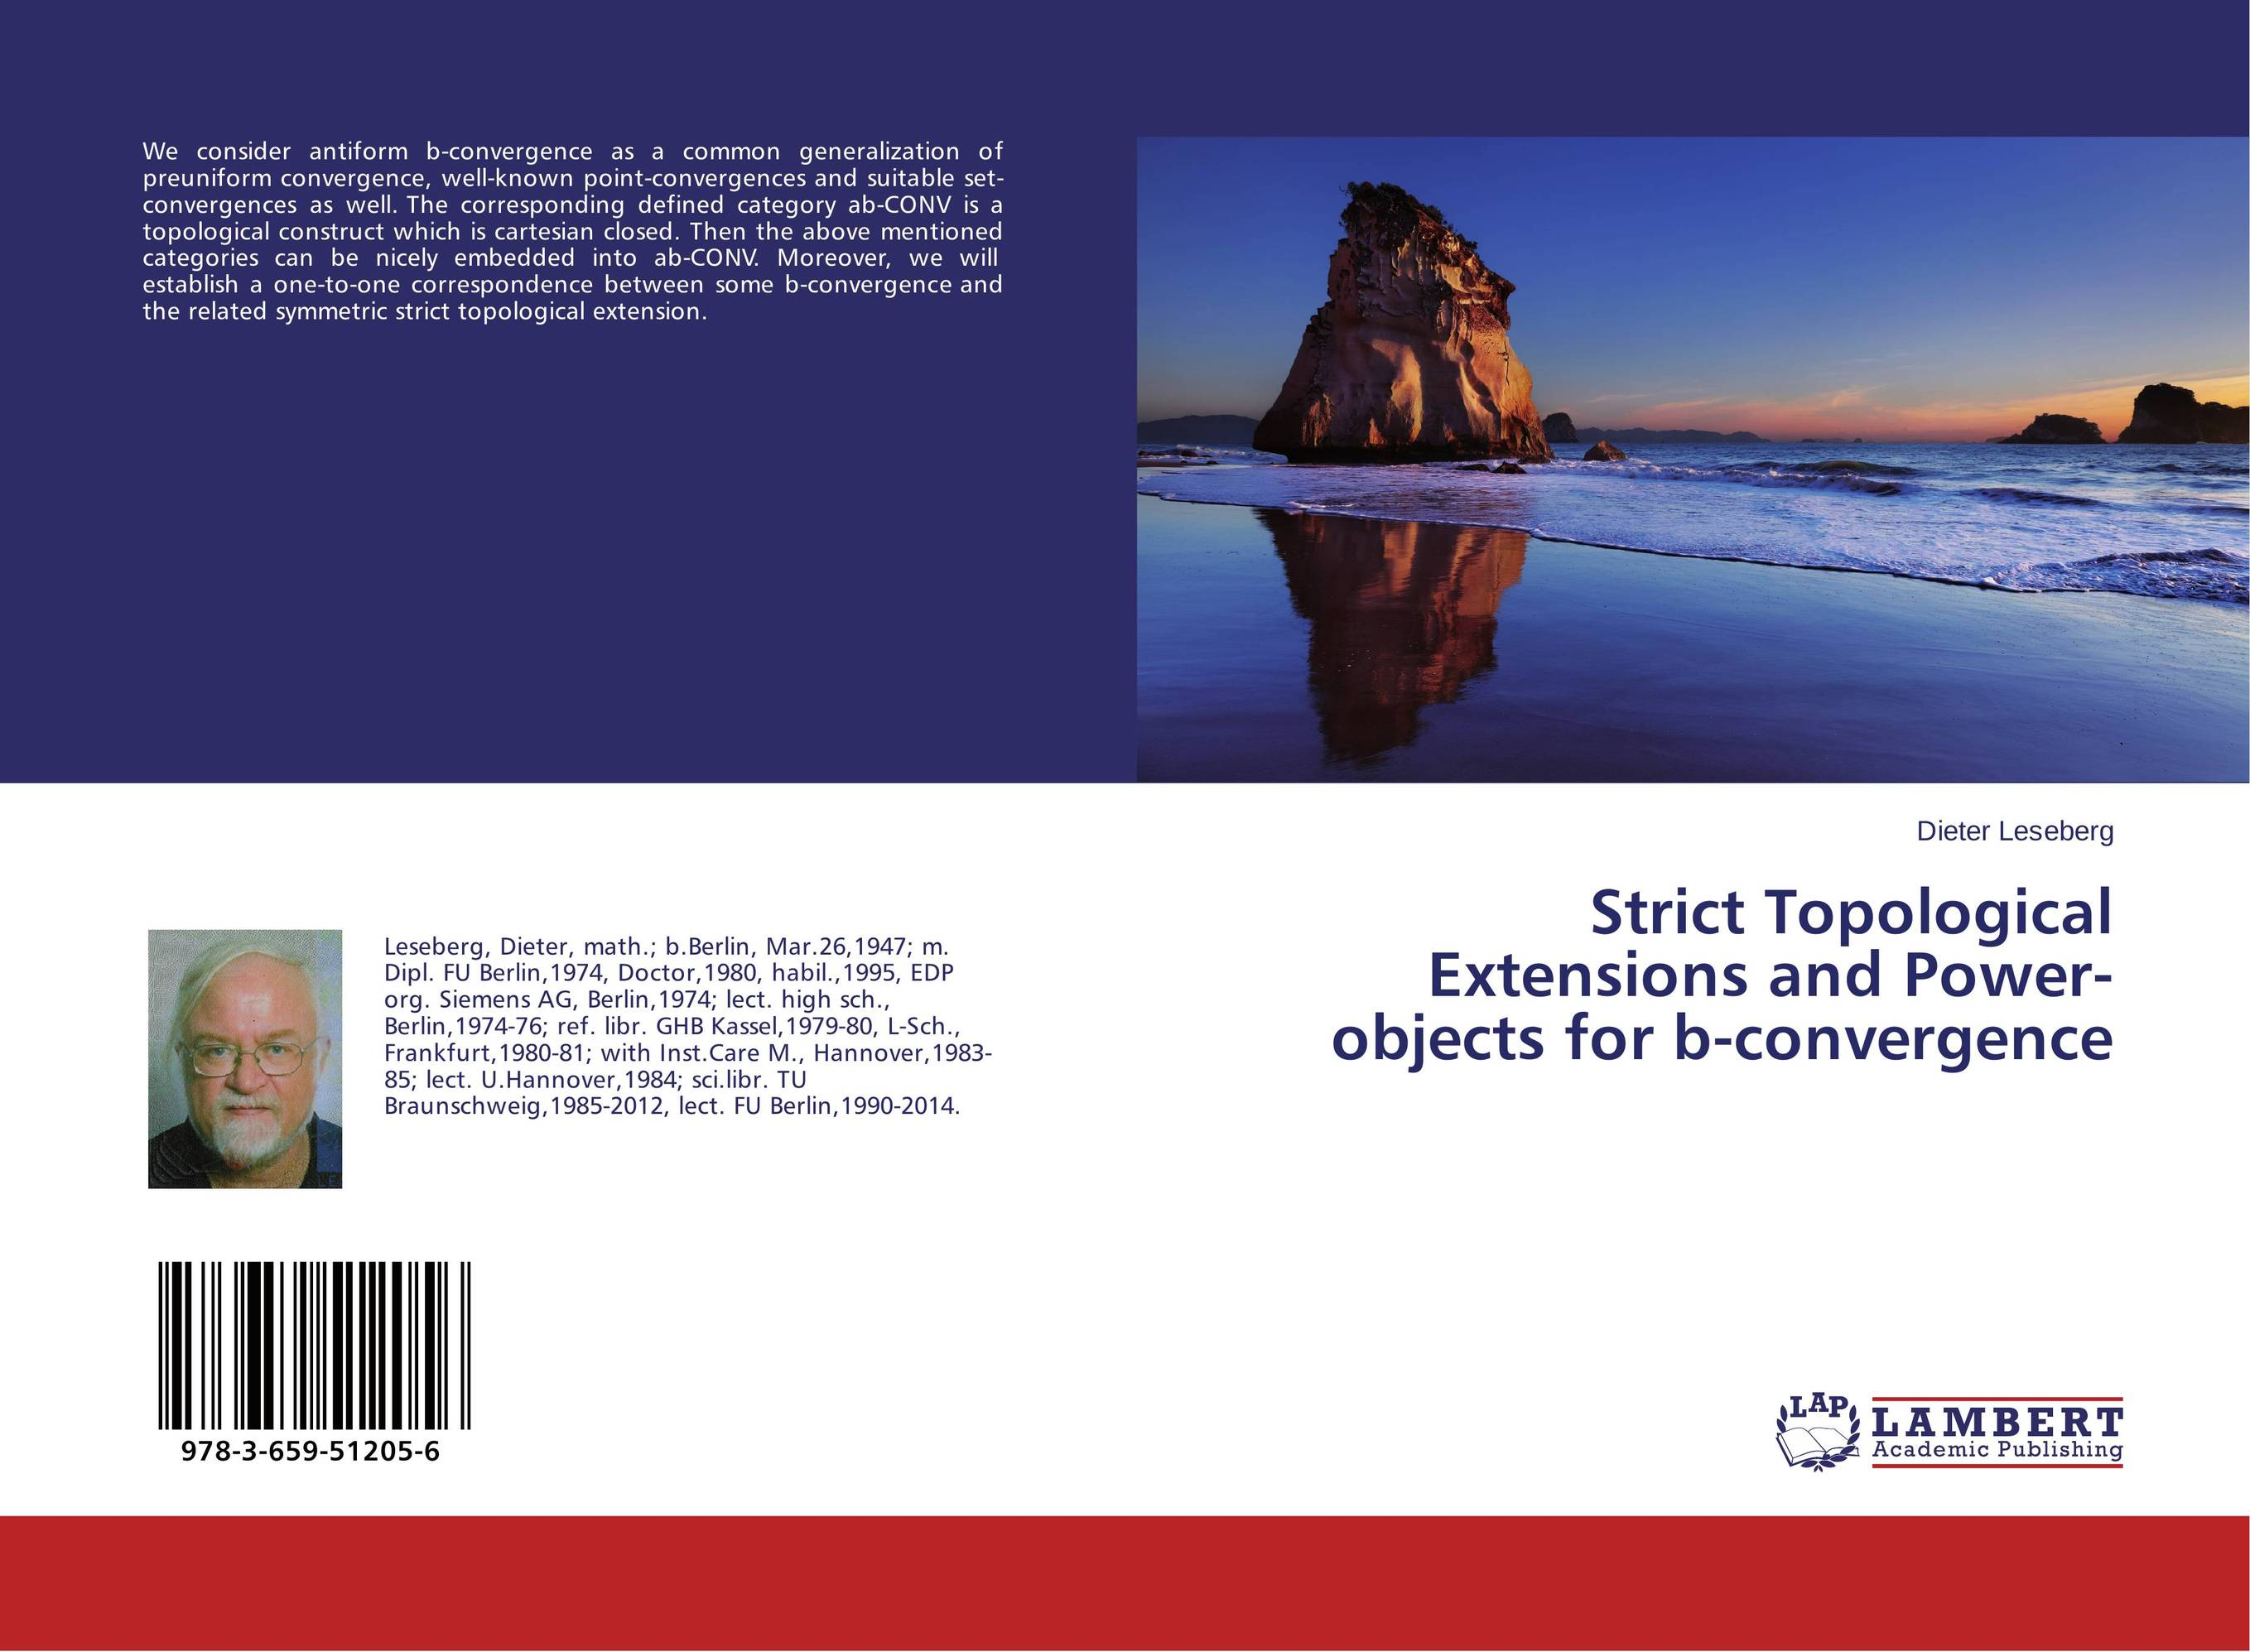 Strict Topological Extensions and Power-objects for b-convergence competitiveness convergence